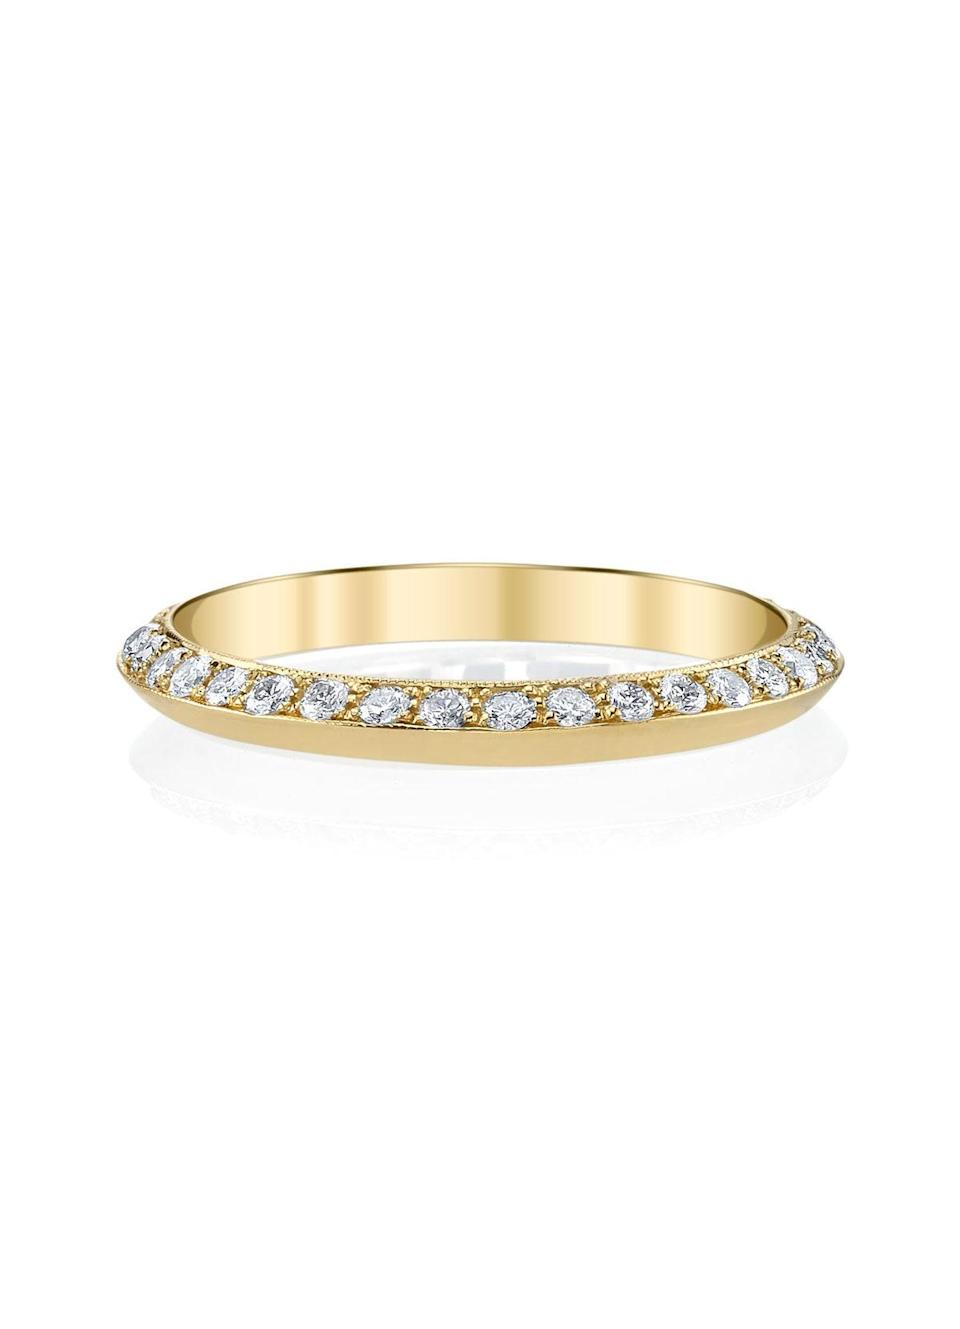 """If you still covet sparkle, Nicholson says pavé bands are great on their own or stacked with a gold band as a pared-back version on the traditional engagement-and-wedding-ring combo. $2285, Lizzie Mandler. <a href=""""https://www.lizziemandler.com/rings/one-sided-knife-edge-band-whitediamonds"""" rel=""""nofollow noopener"""" target=""""_blank"""" data-ylk=""""slk:Get it now!"""" class=""""link rapid-noclick-resp"""">Get it now!</a>"""